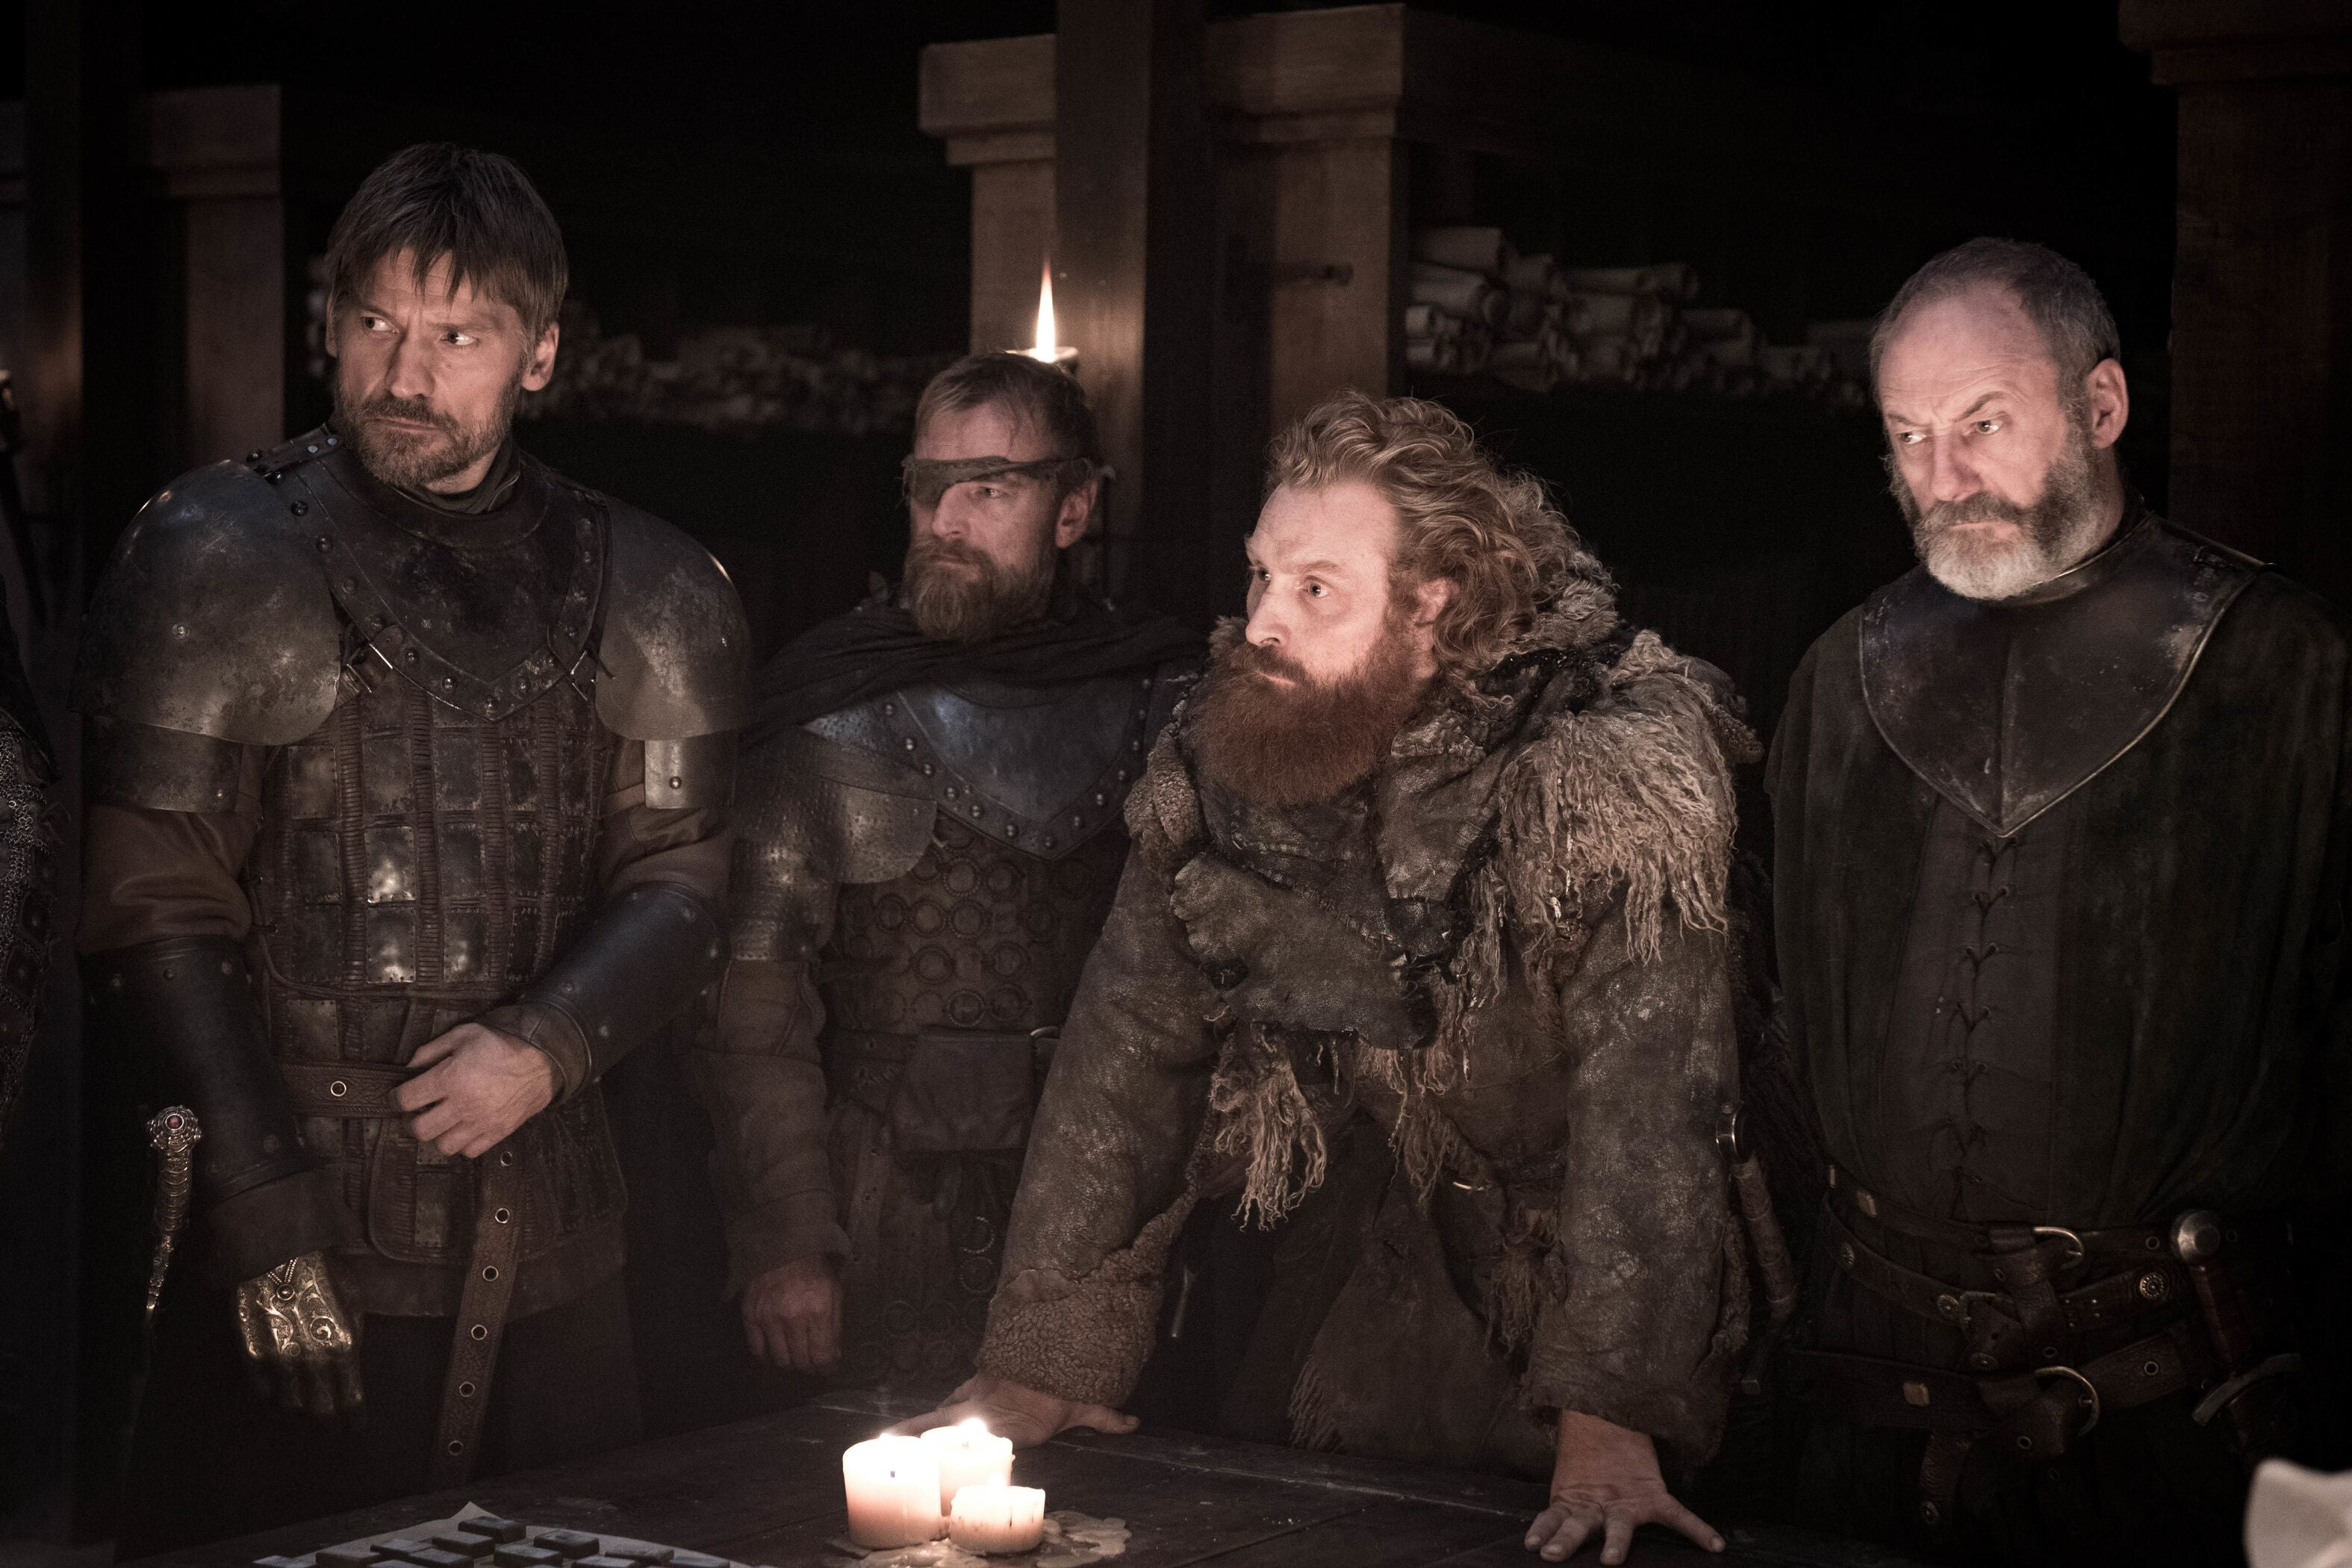 Jaime Lannister, Berric Dondarion, Tormund Giantsbane, and Ser Jorah gather at Winterfell